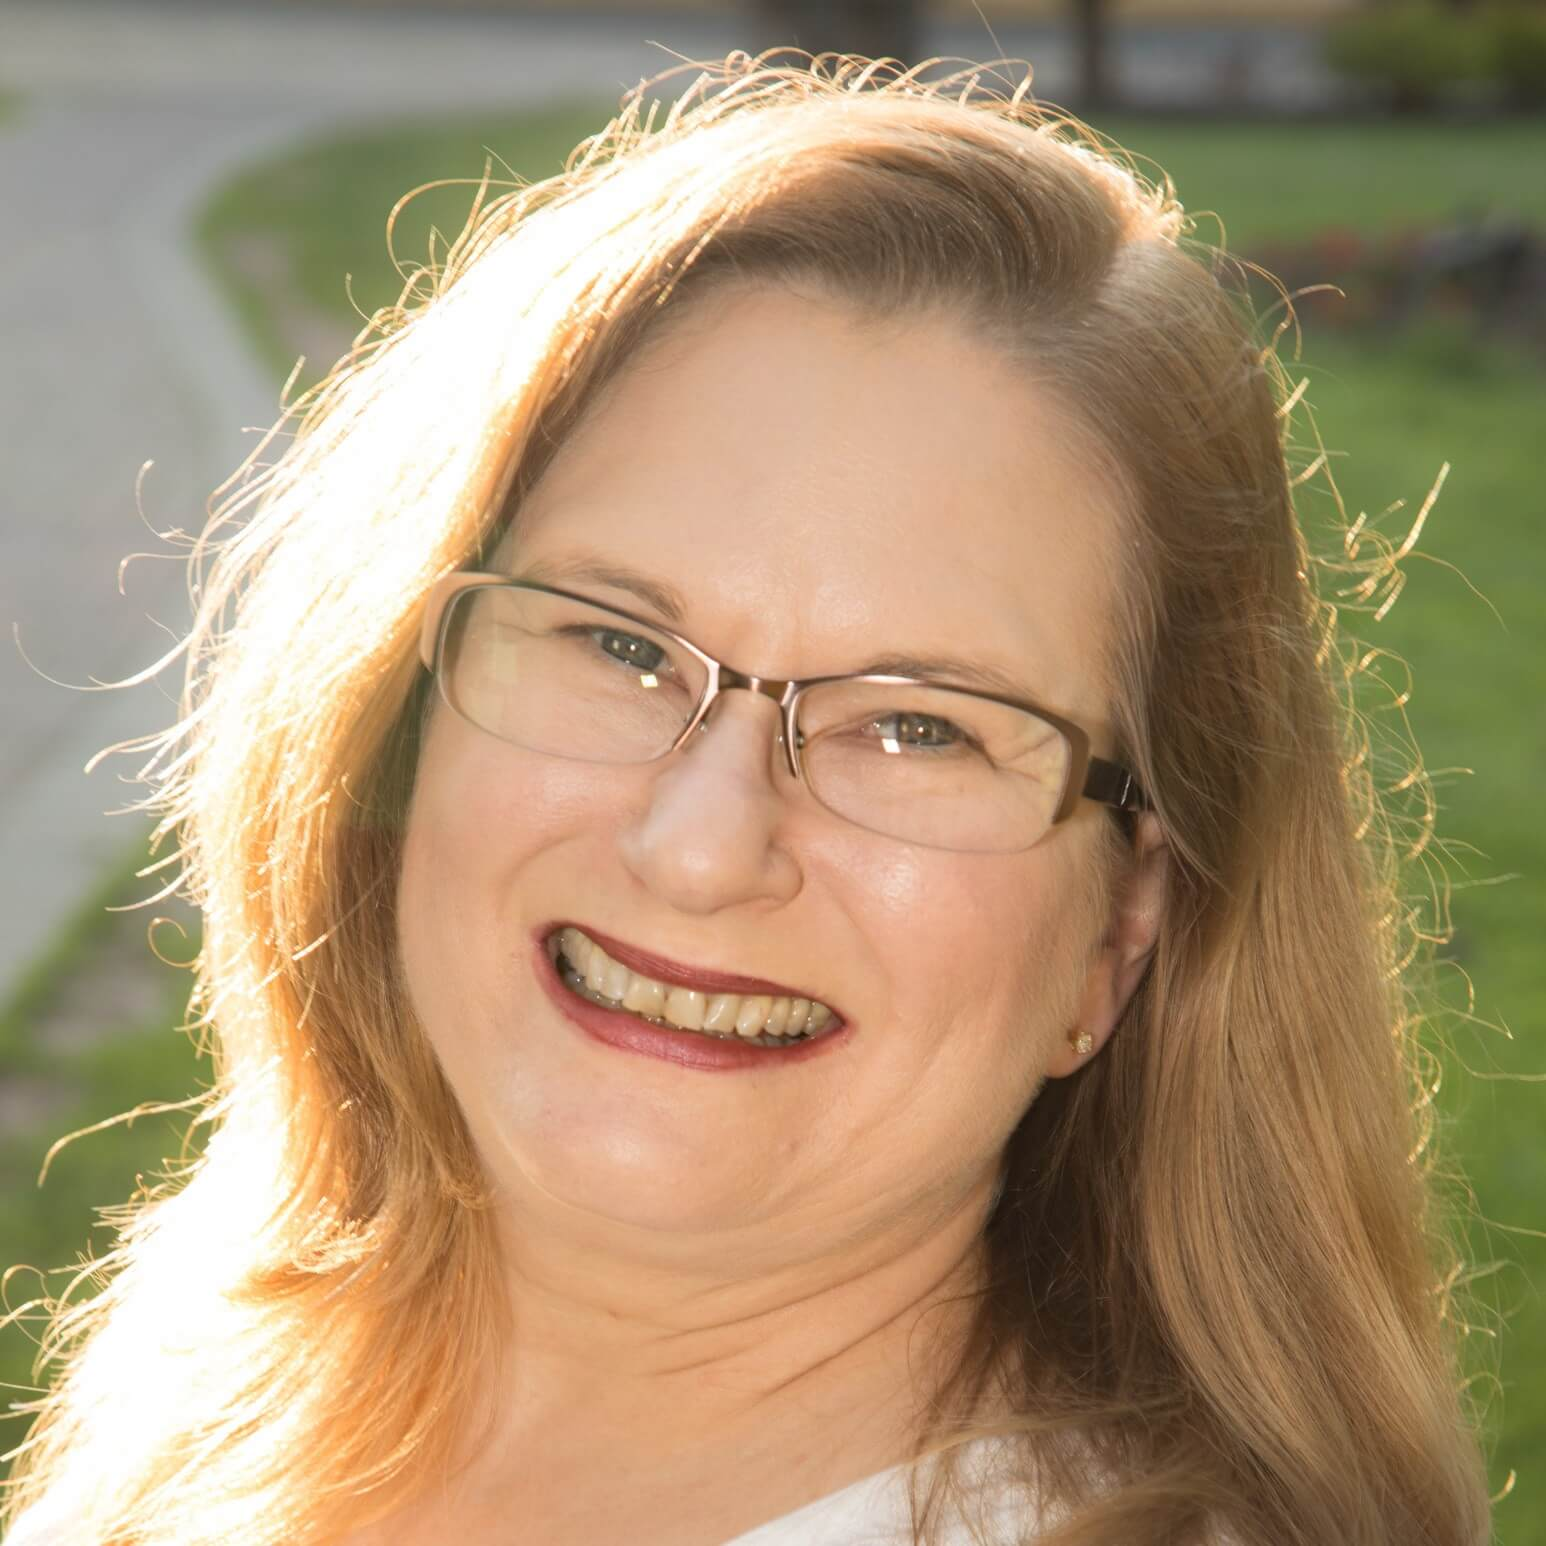 Headshot of Rebecca Strub, Lawyer and New Law Business Model member.